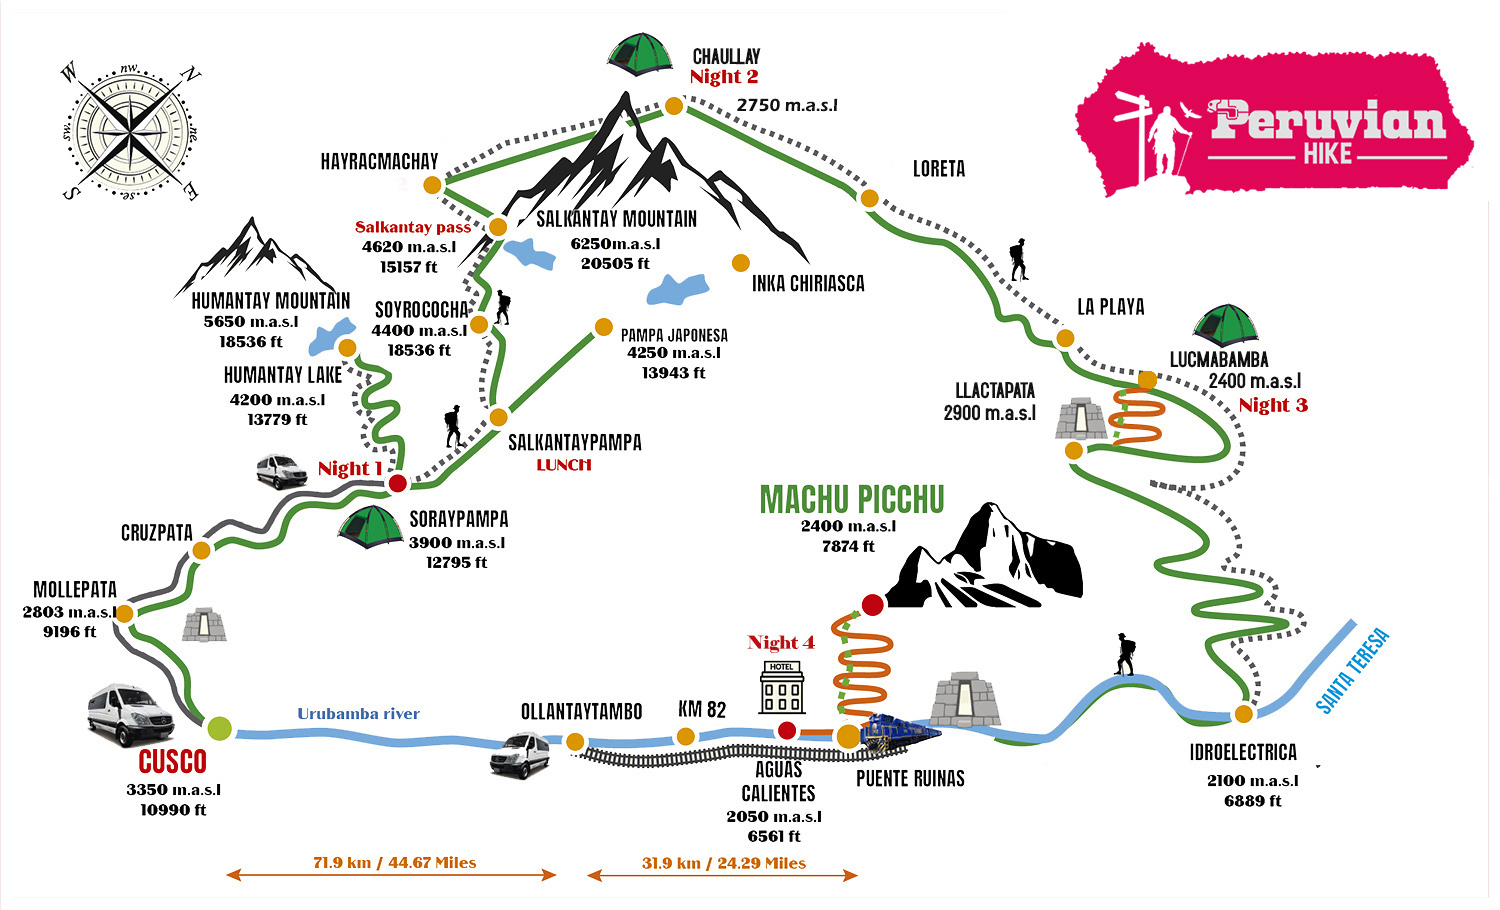 TREKKING TO MACHU PICCHU | SALKANTAY TREK AND INCA TRAILL 7 ... on appalacian trail map, inca trail map, santa cruz trail map, mountain trail map, machu picchu trail map, huayna picchu trail map, tuckerman ravine trail map, fat man's pass trail map,